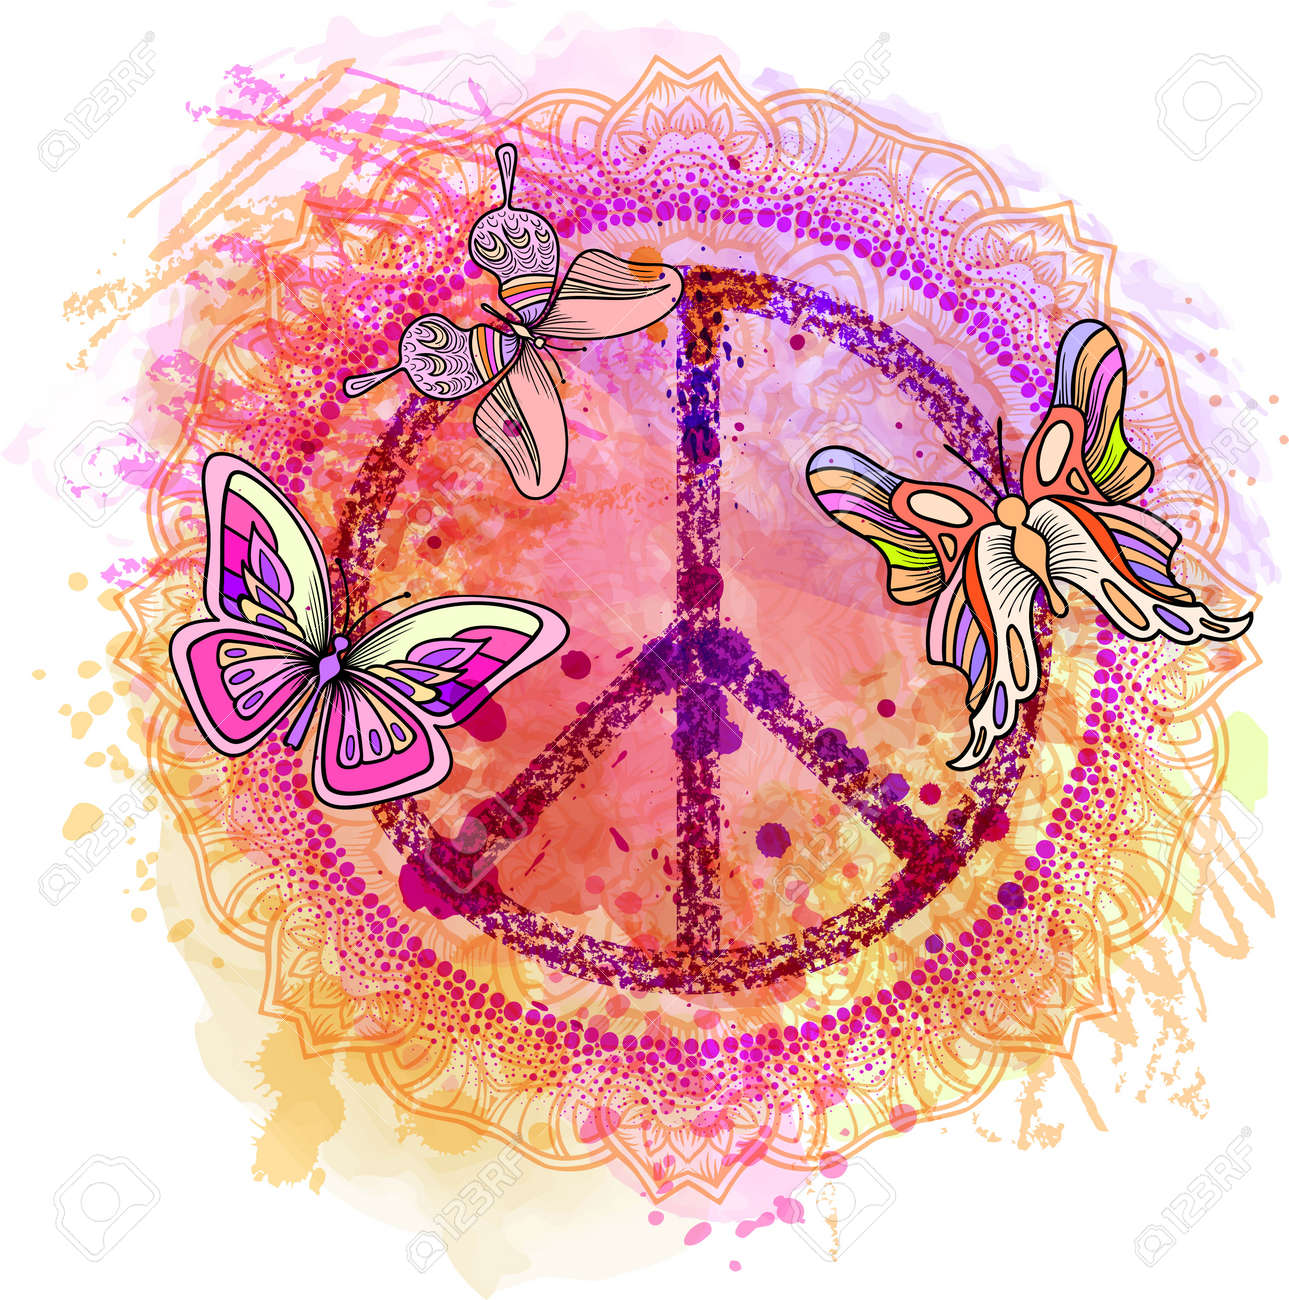 Peace Hippie Symbol over colorful background. illustration for t-shirt print over Abstract watercolor,chalk, pastels texture background. - 64860942